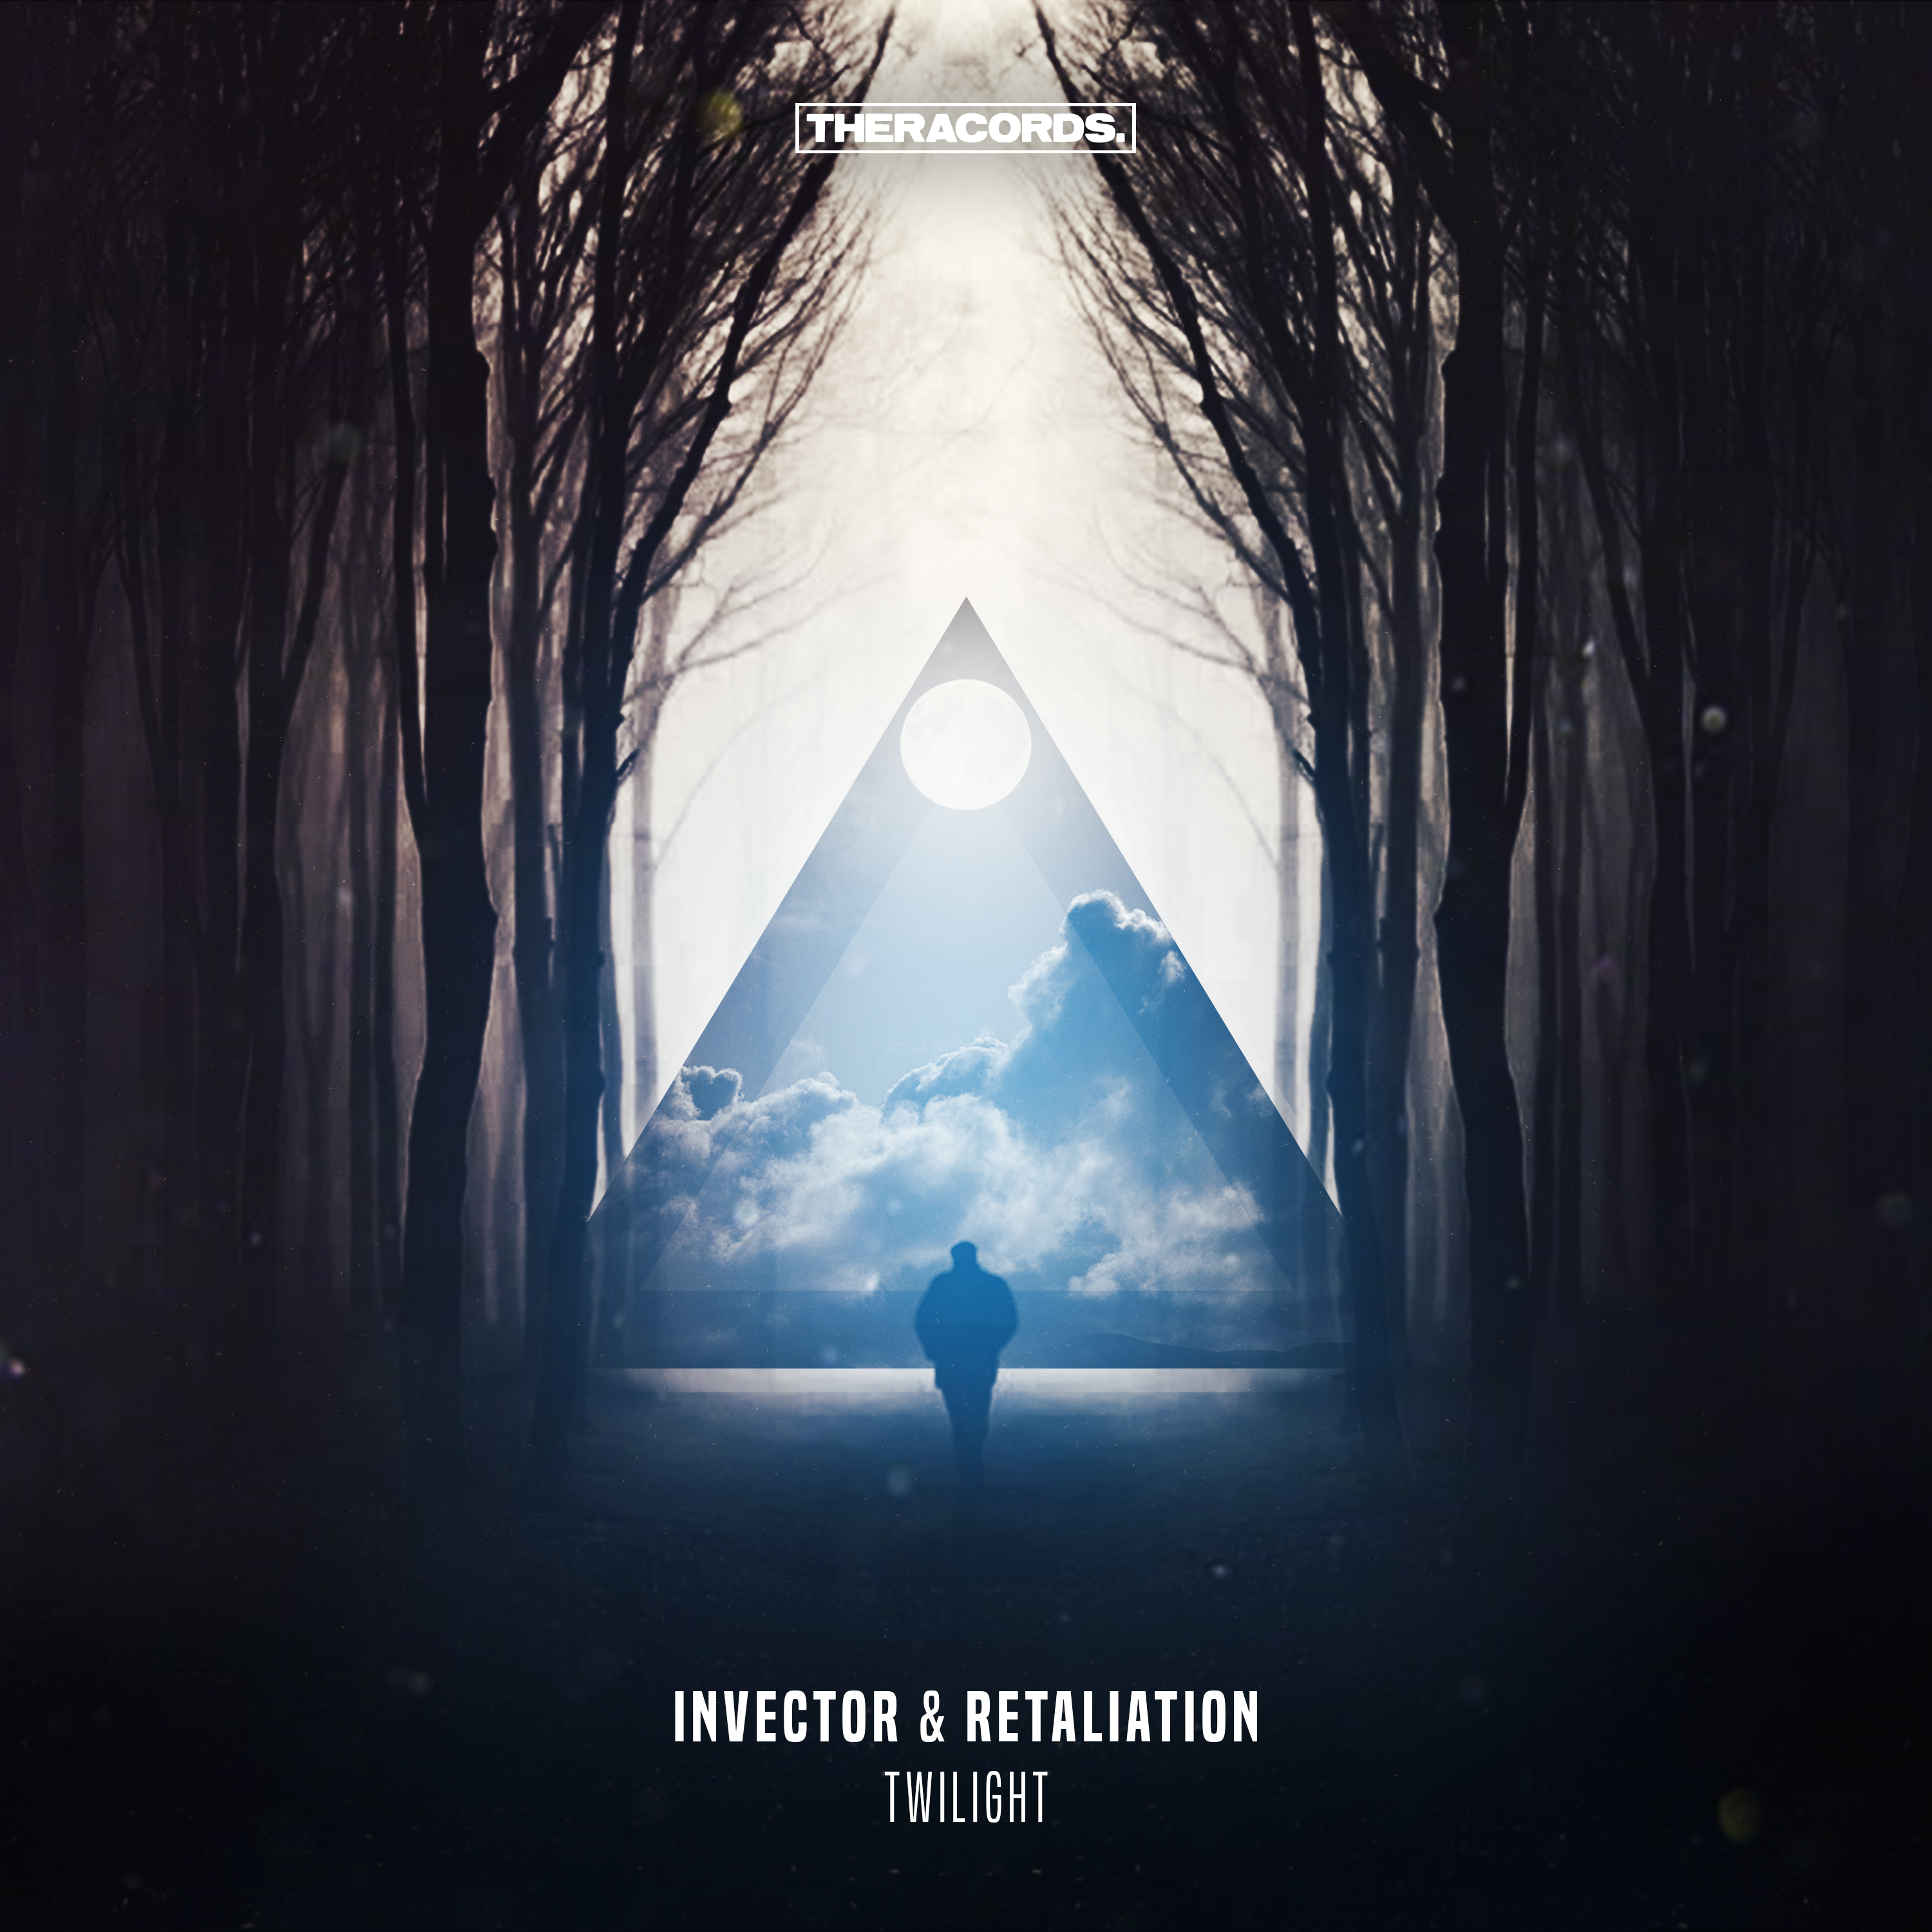 Invector & Retaliation - Twilight [THERACORDS] THER193